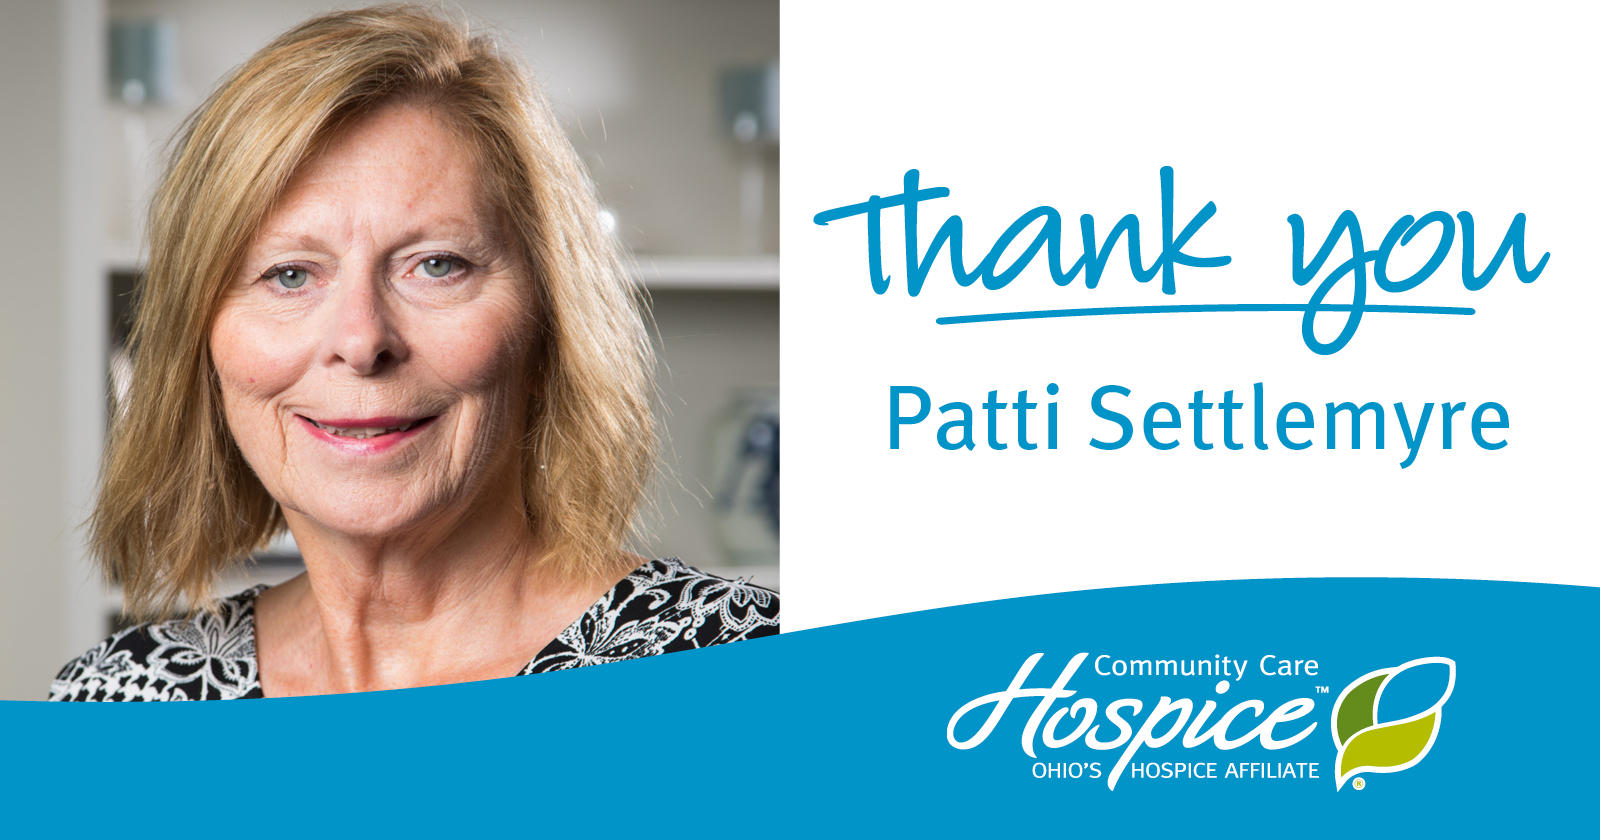 Patti Settlemyre Retires From Community Care Hospice And Ohio's Hospice Of Fayette County